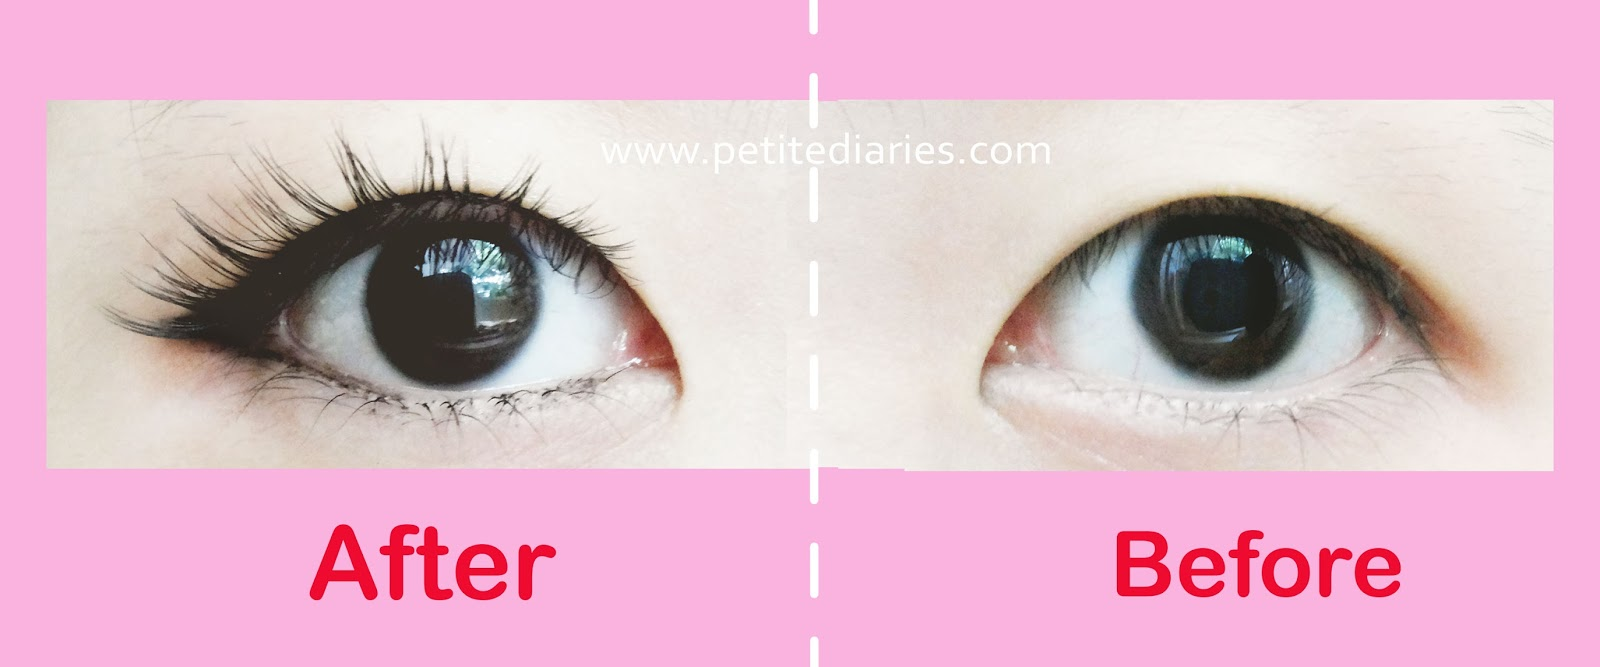 japanese eyelashes review before after